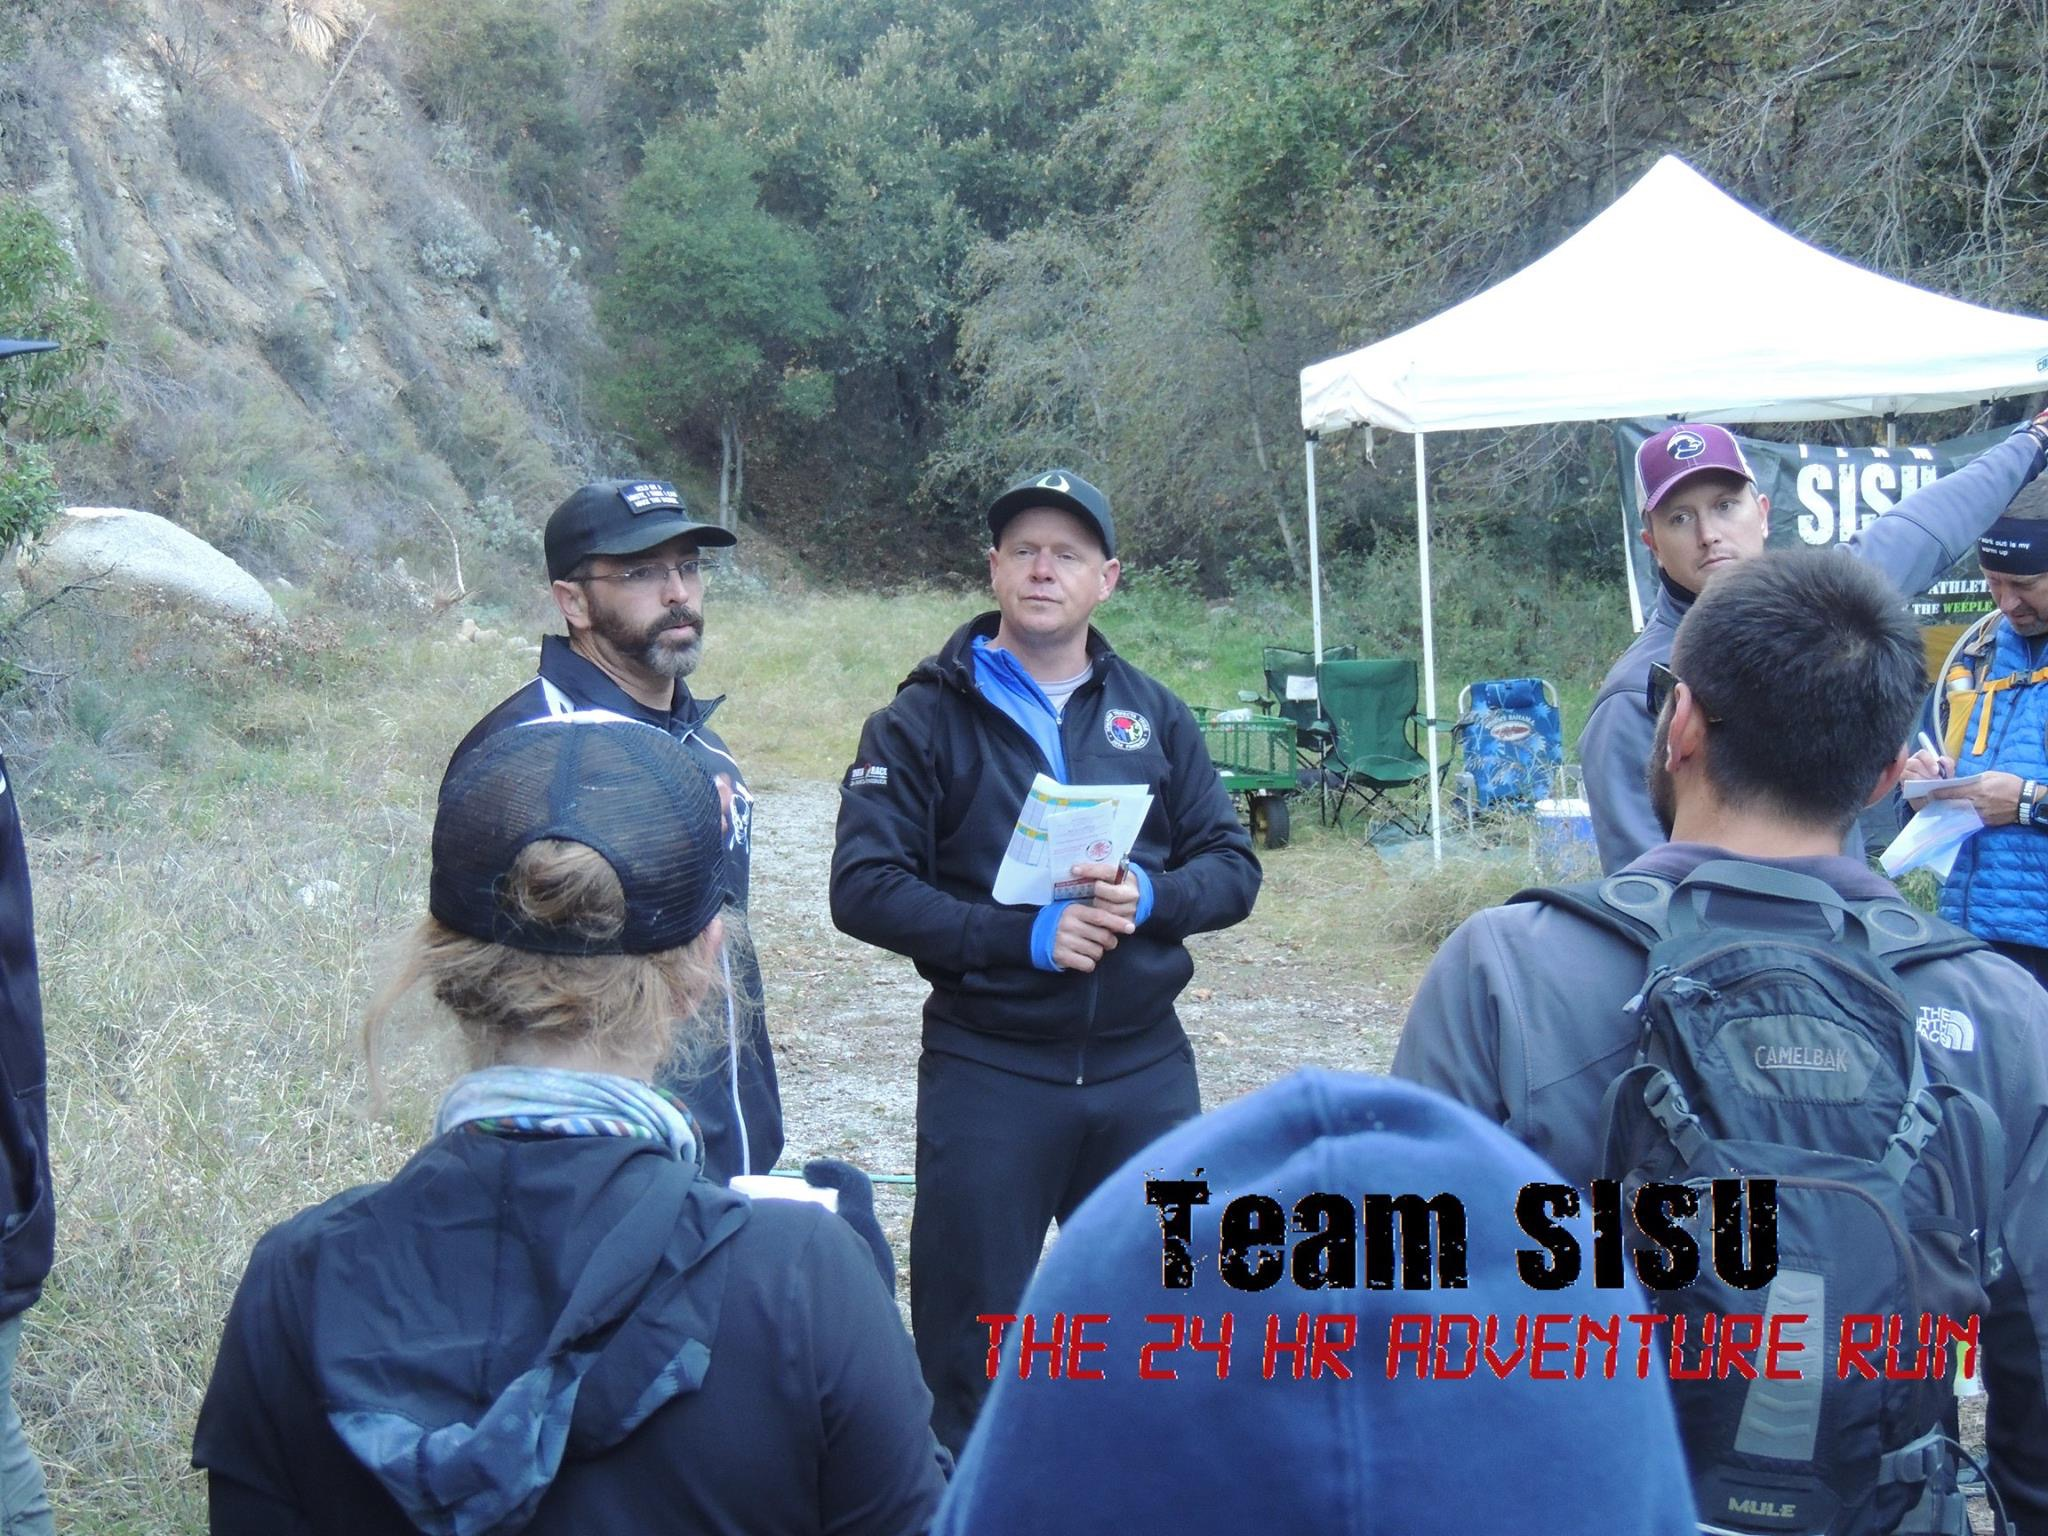 SISU 24 briefing